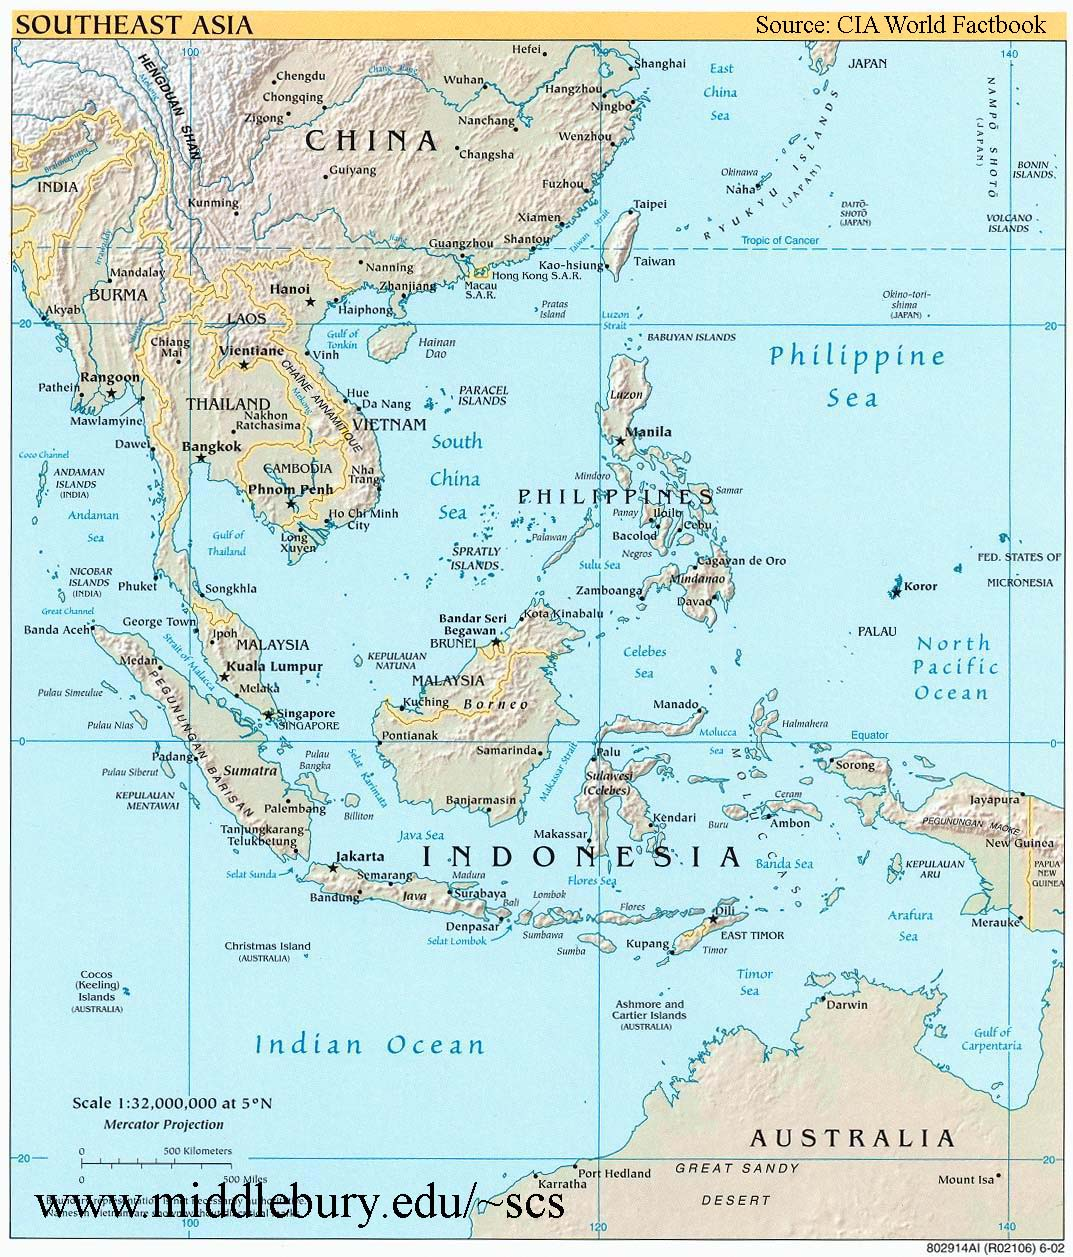 Map Of Asia Rivers And Seas.Southeast Asia Reference Map Cia The South China Sea